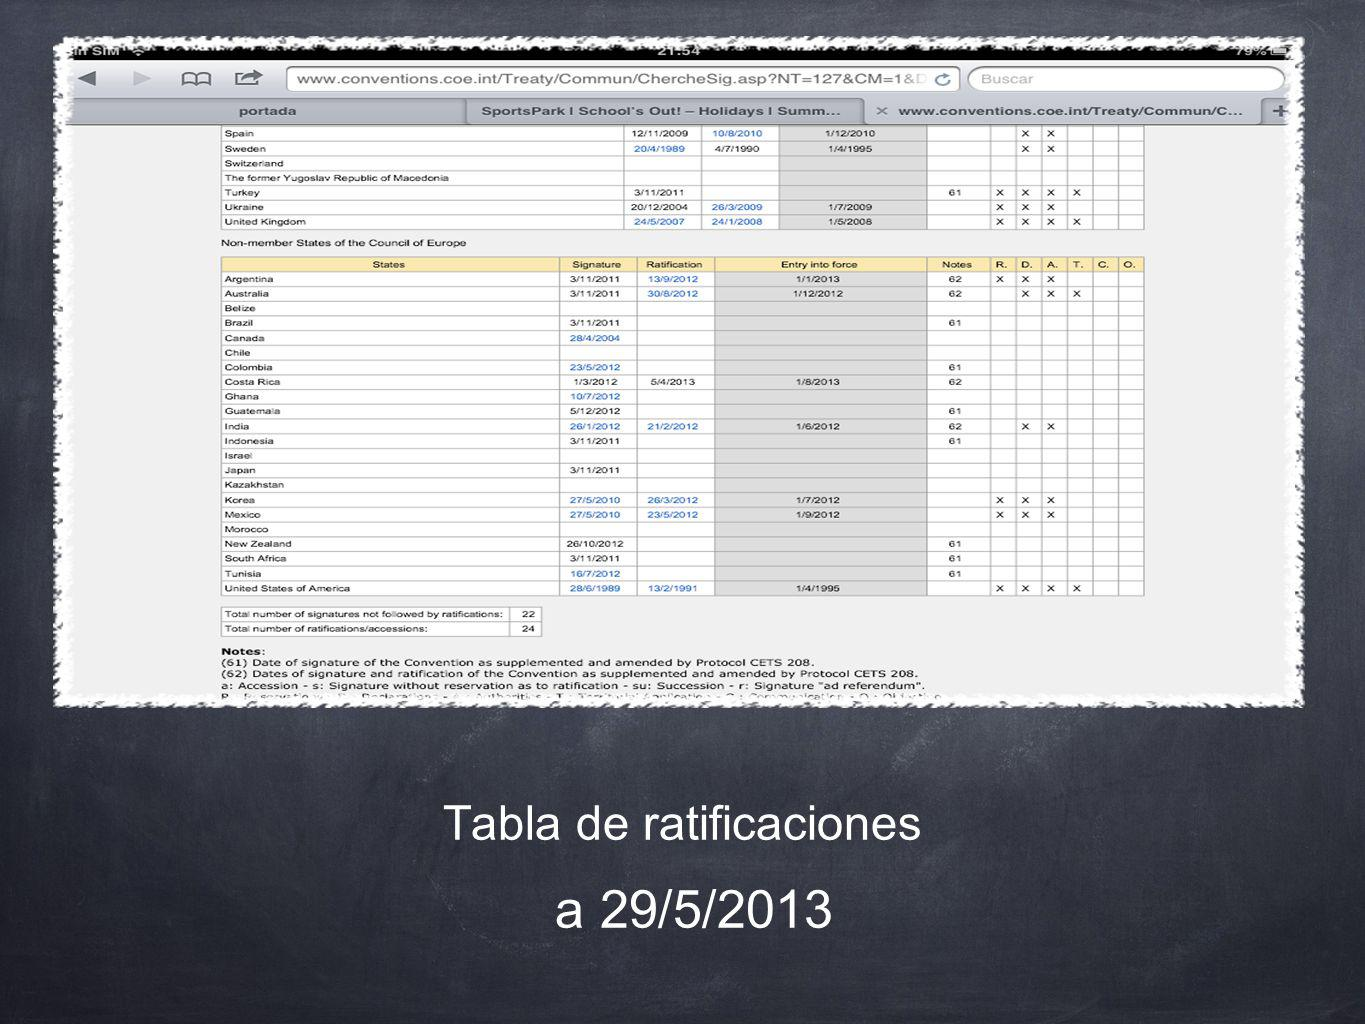 Tabla de ratificaciones a 29/5/2013